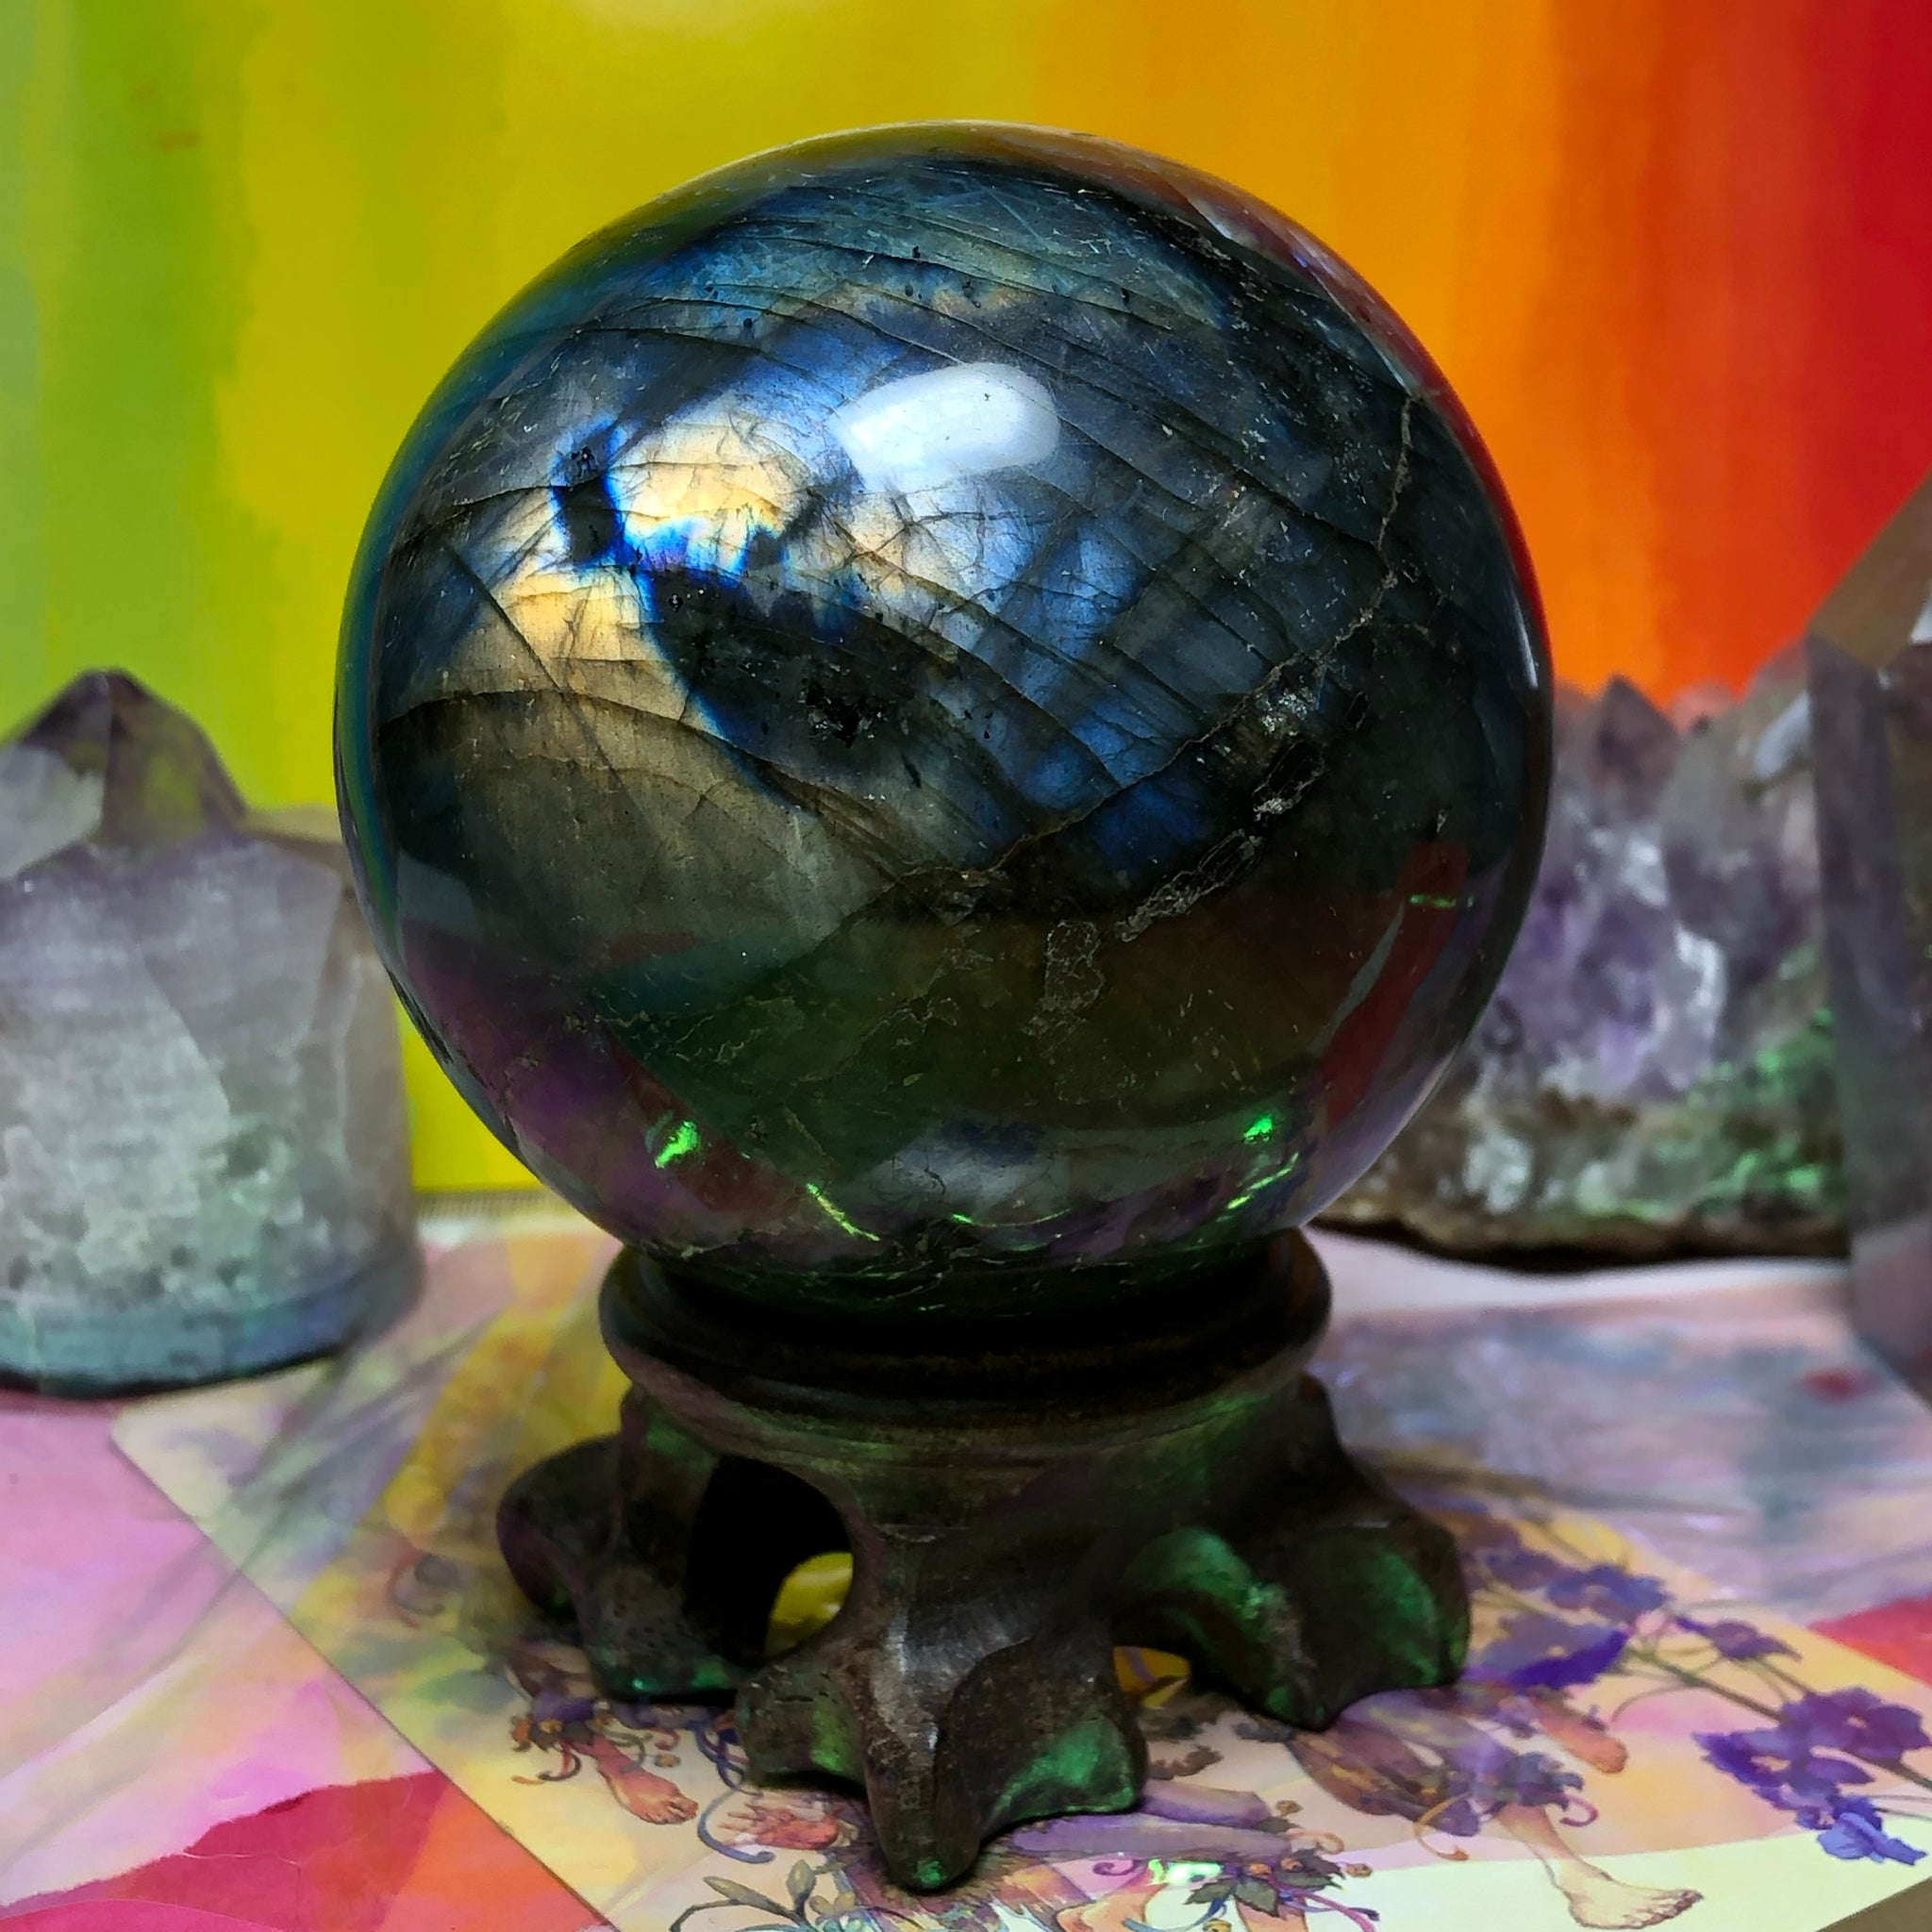 Rainbow Labradorite Sphere with Stand 403g - The Whimsy Crystal Shop